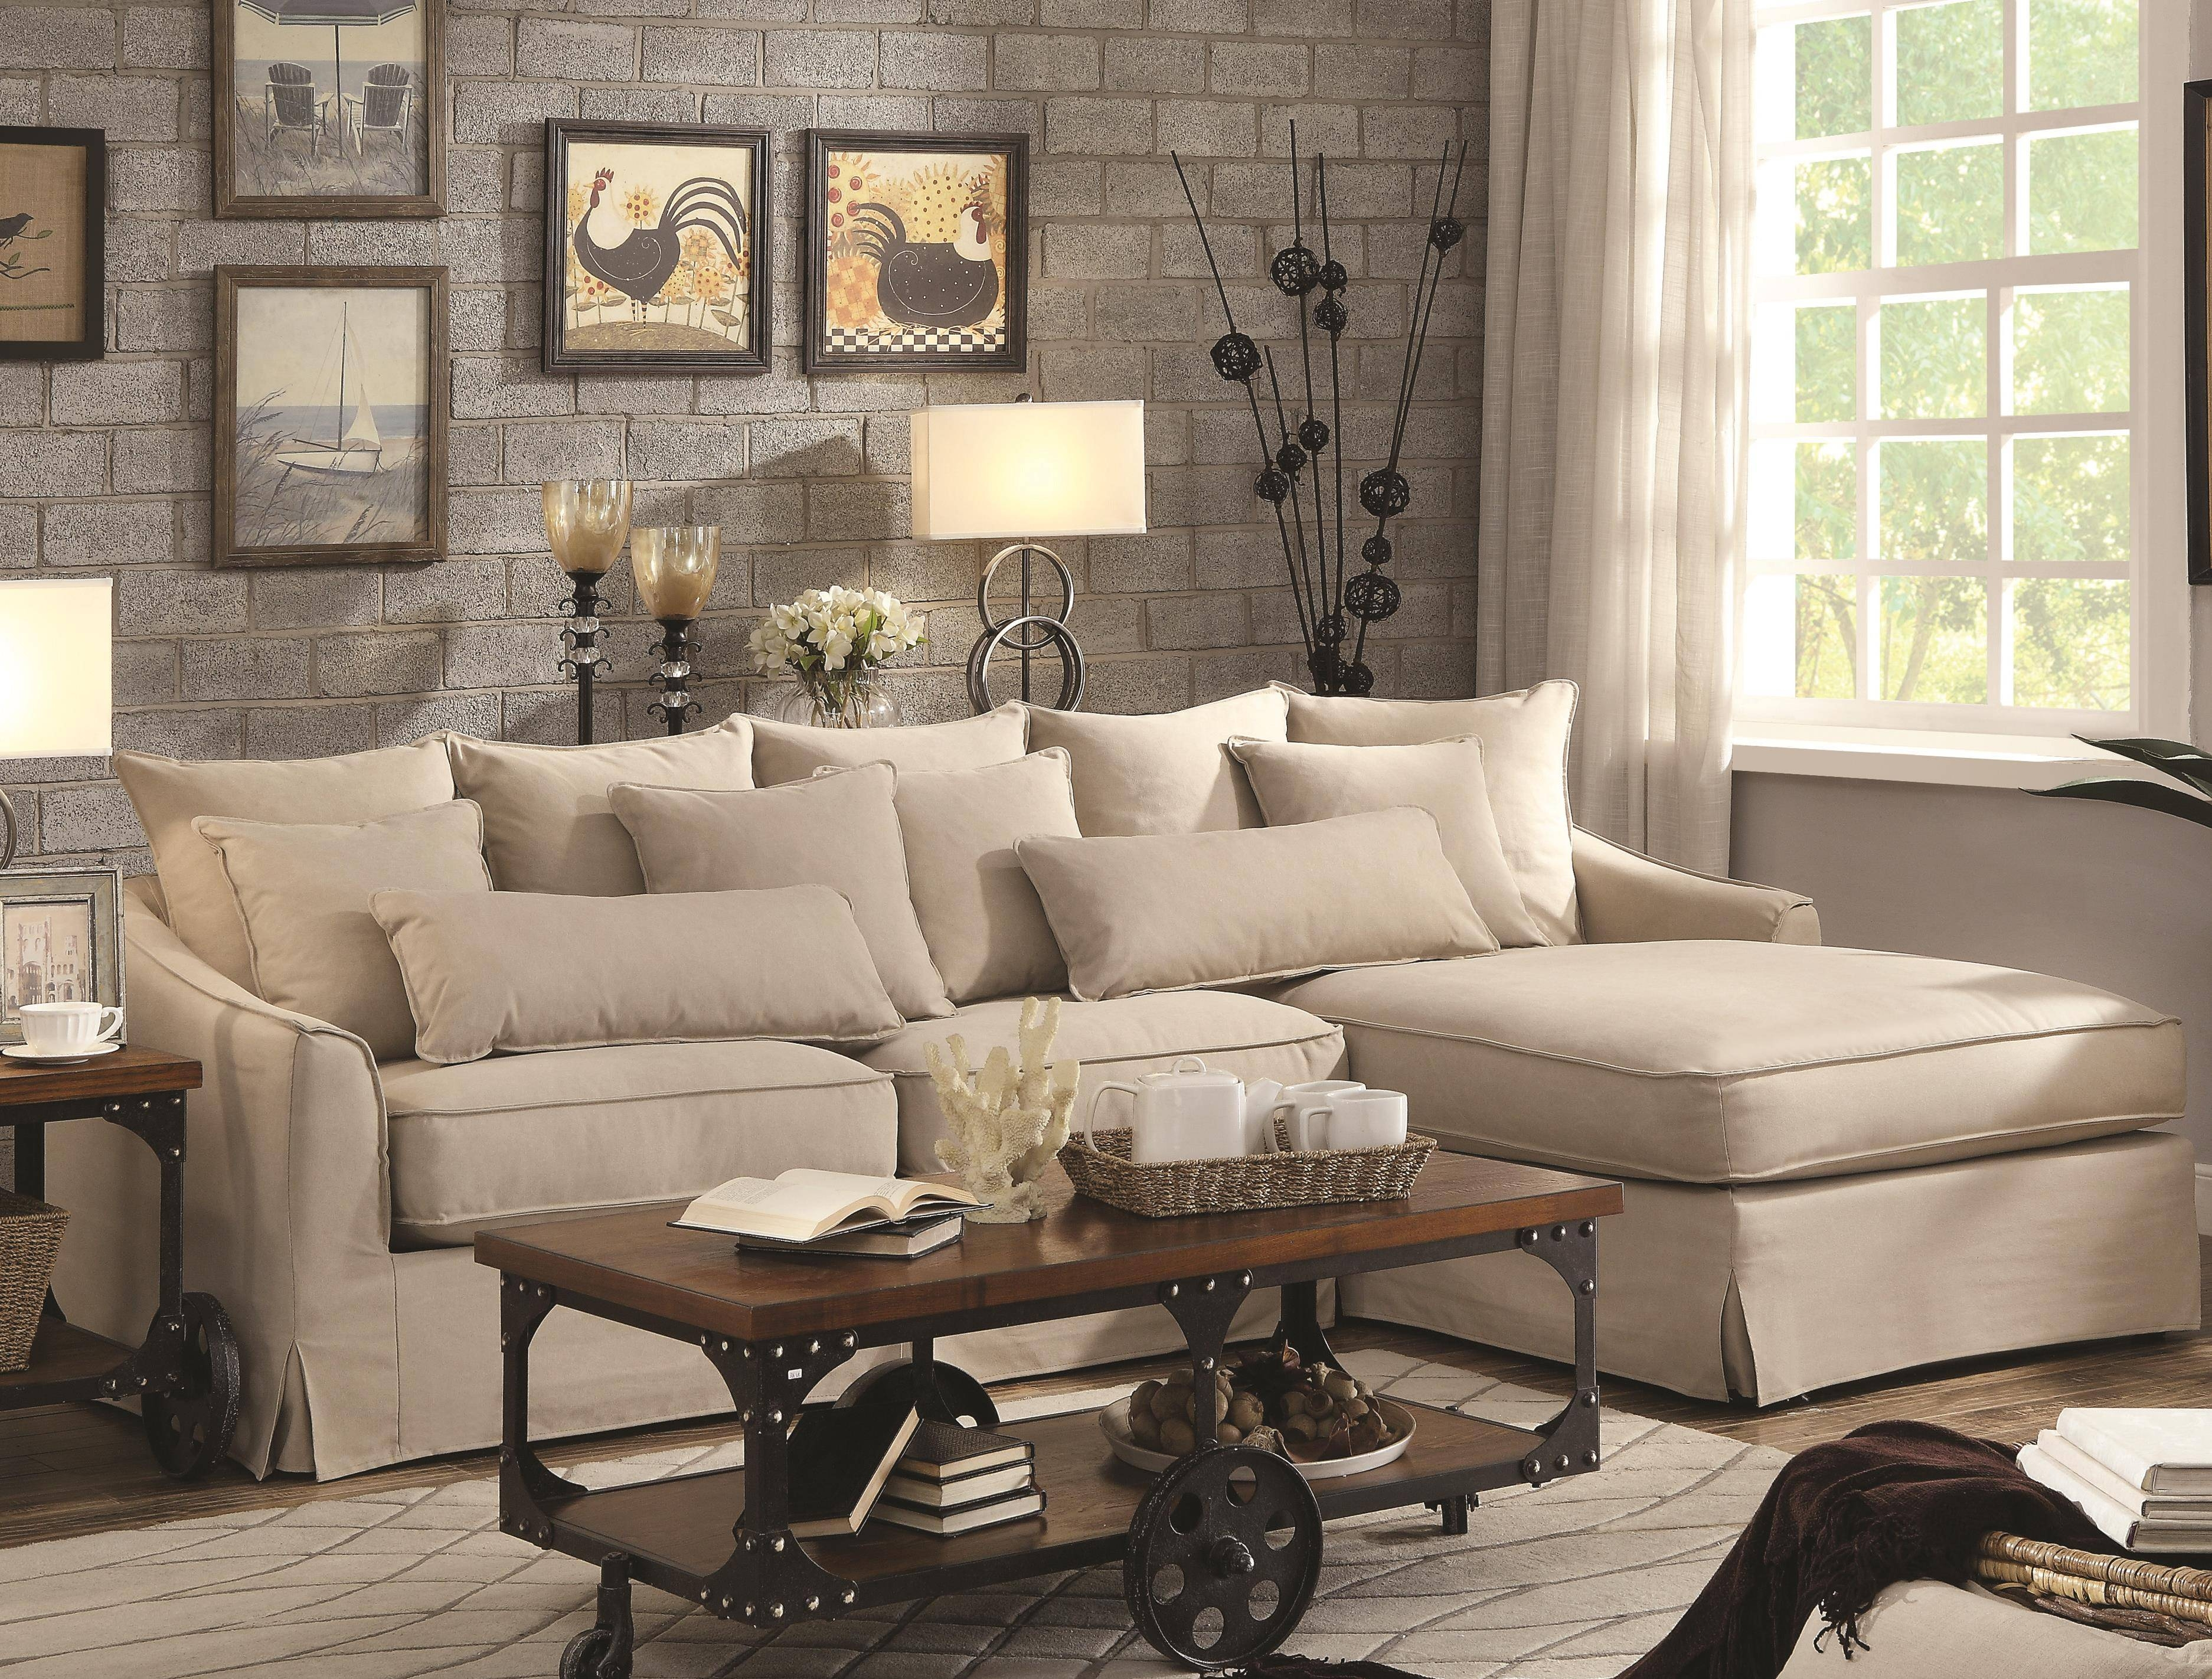 Slipcovered Sectional Sofa With Chaise | Tehranmix Decoration for Comfy Sectional Sofa (Image 24 of 30)